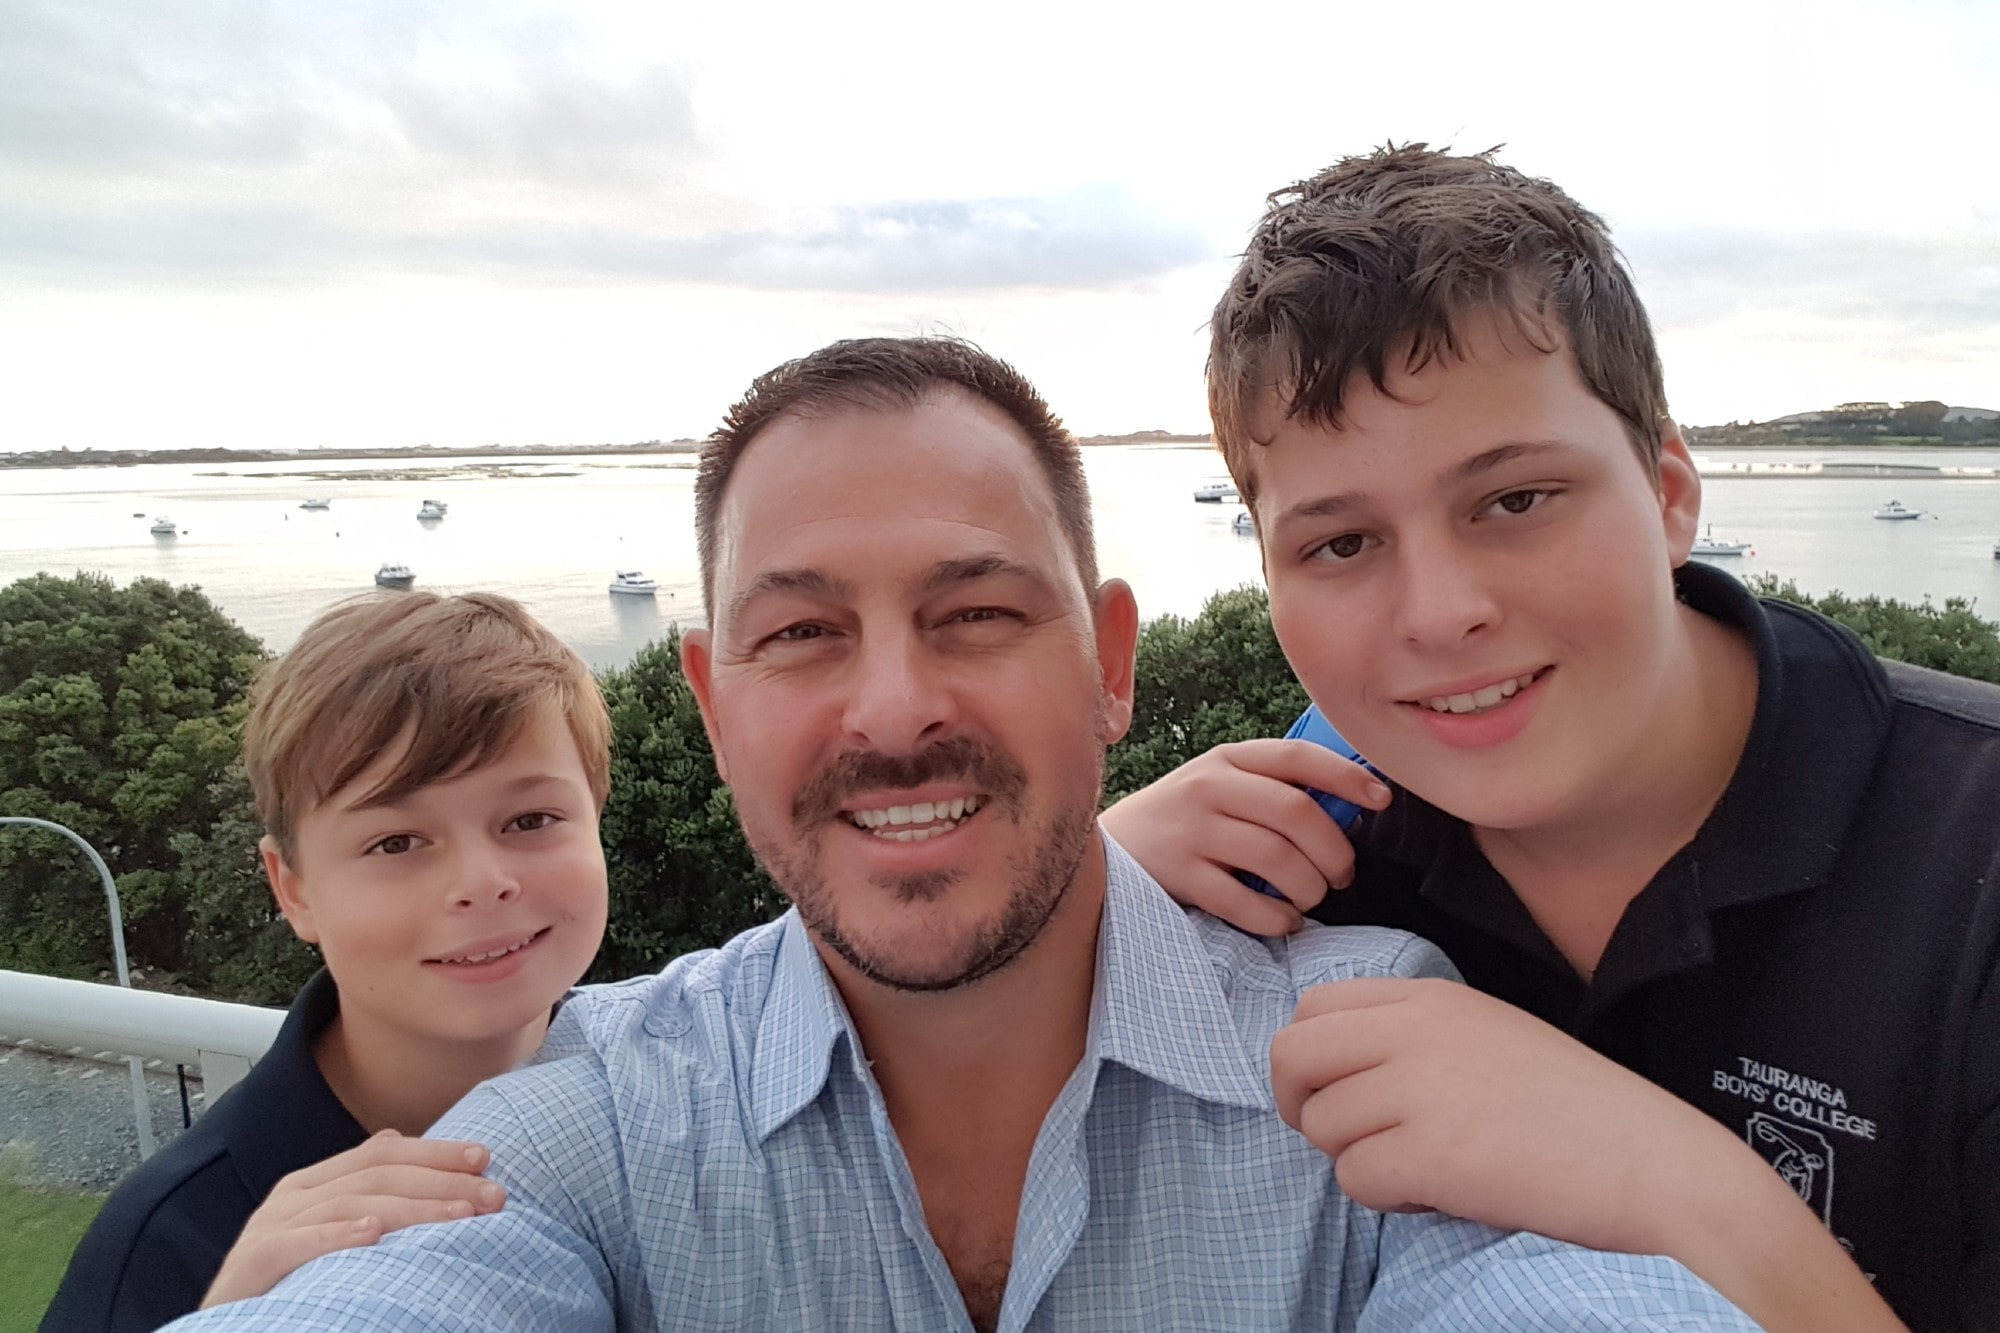 Dean Peddle and his children, Liam and Noah